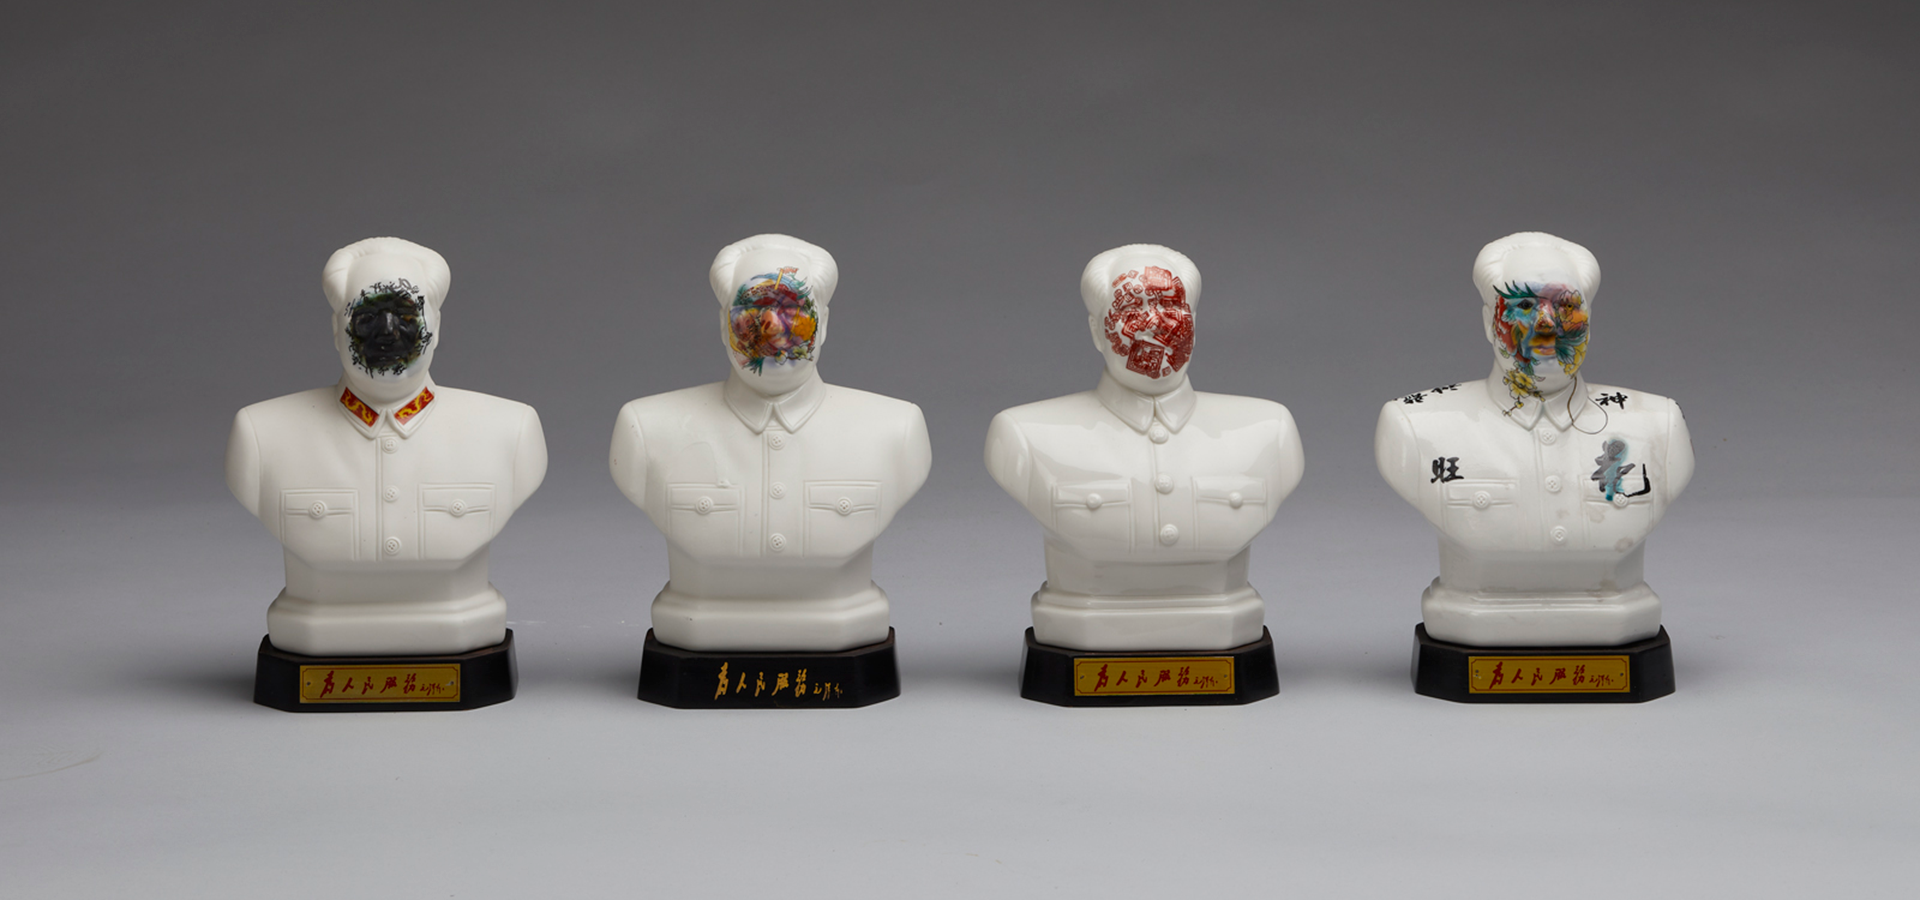 Four ceramic busts of Mao Zedong with paint covering their faces